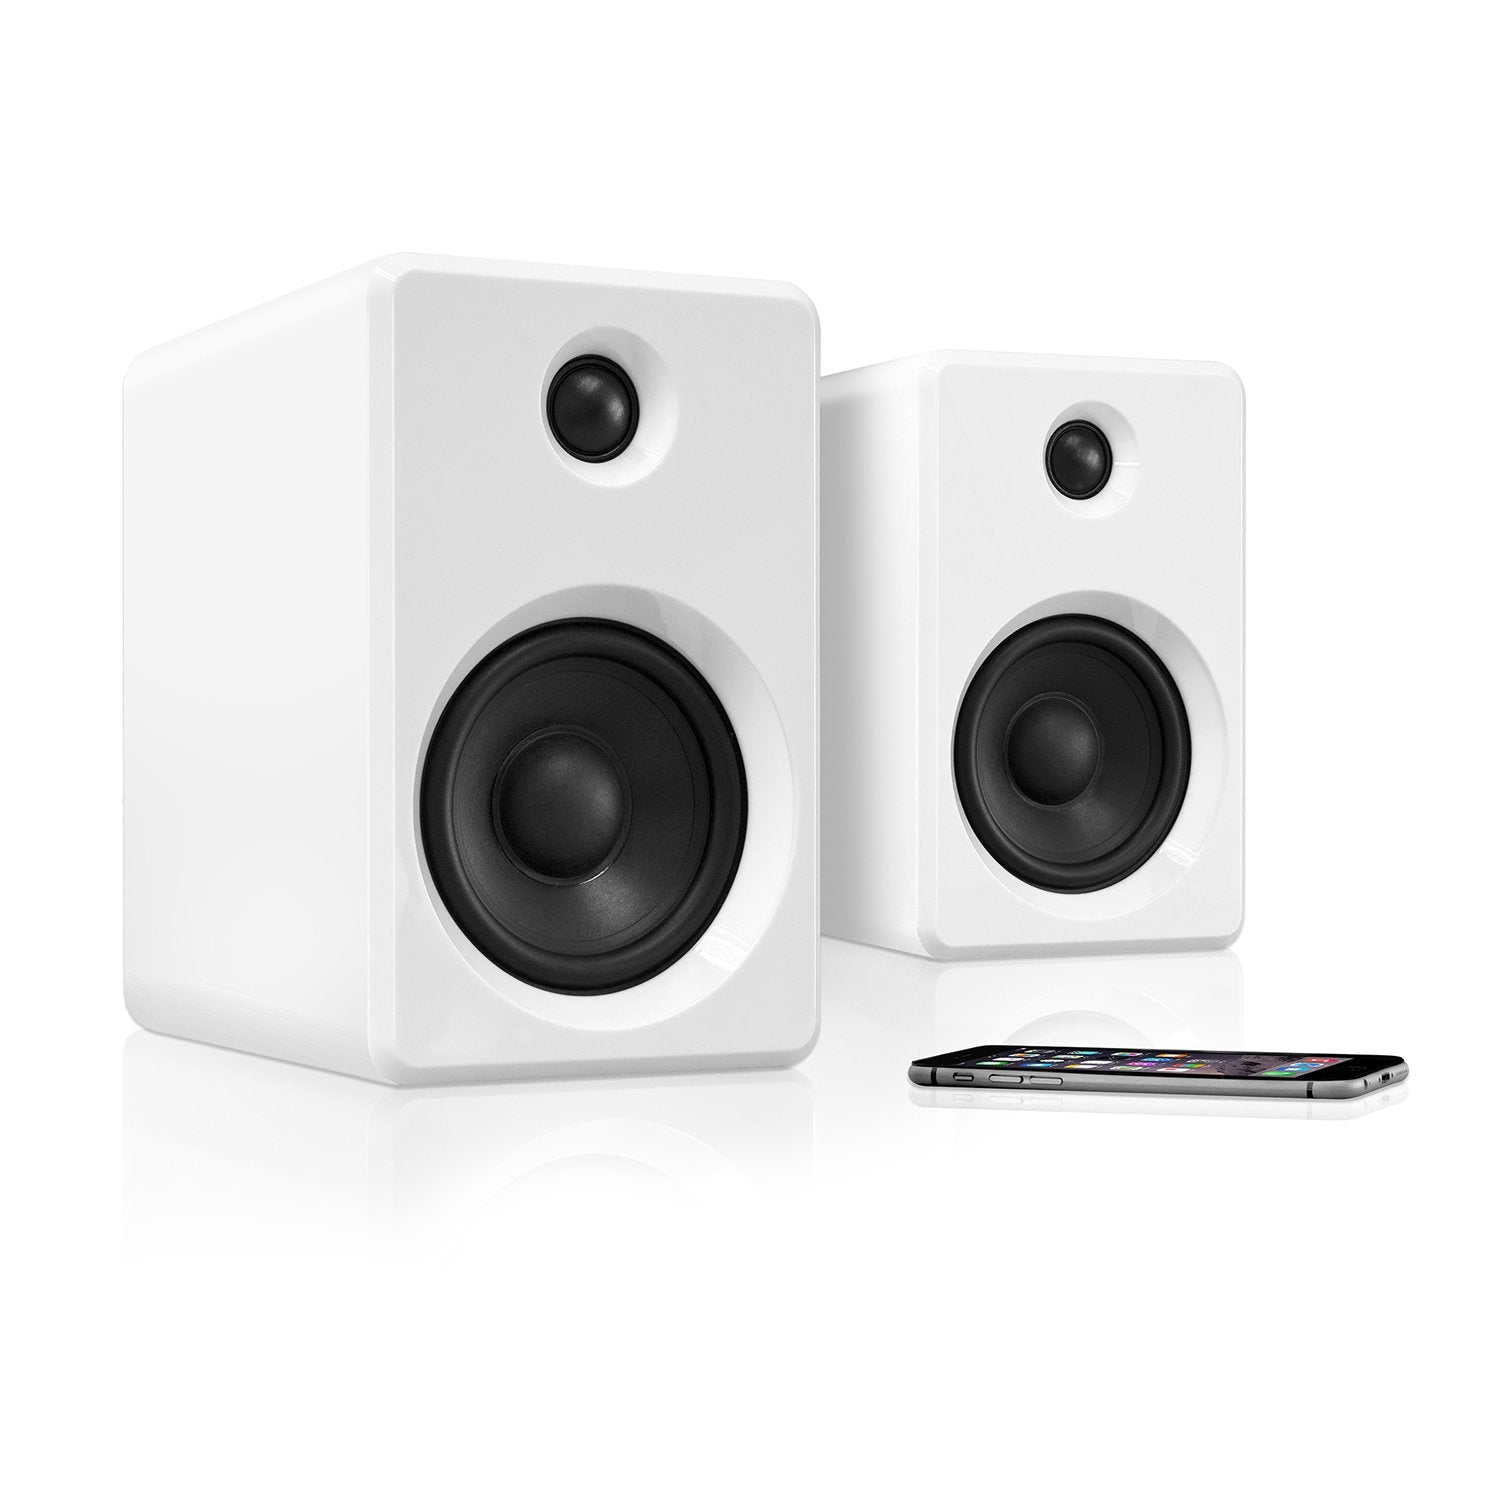 Portable Wireless Speaker 3D Stereo Music Surround Sound System WFFF Mini Outdoor Bluetooth Speaker